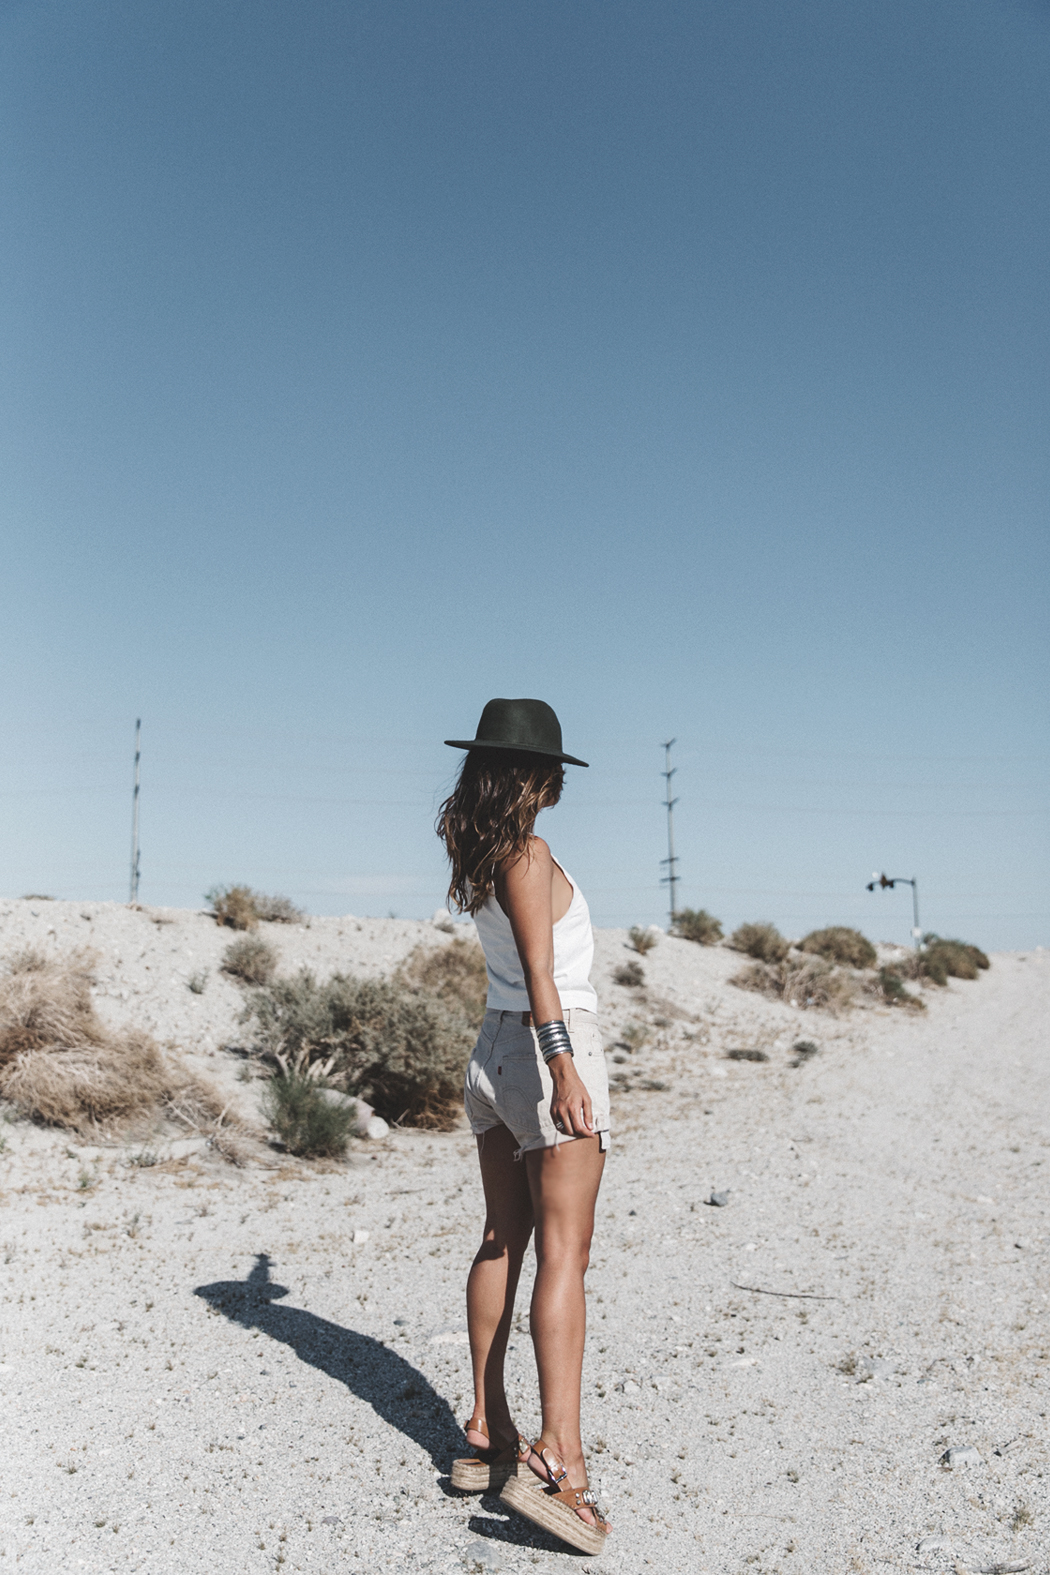 Calvin_Klein-White_Series_Collection-Shorts-Desert-Palm_Springs-Outfit-12